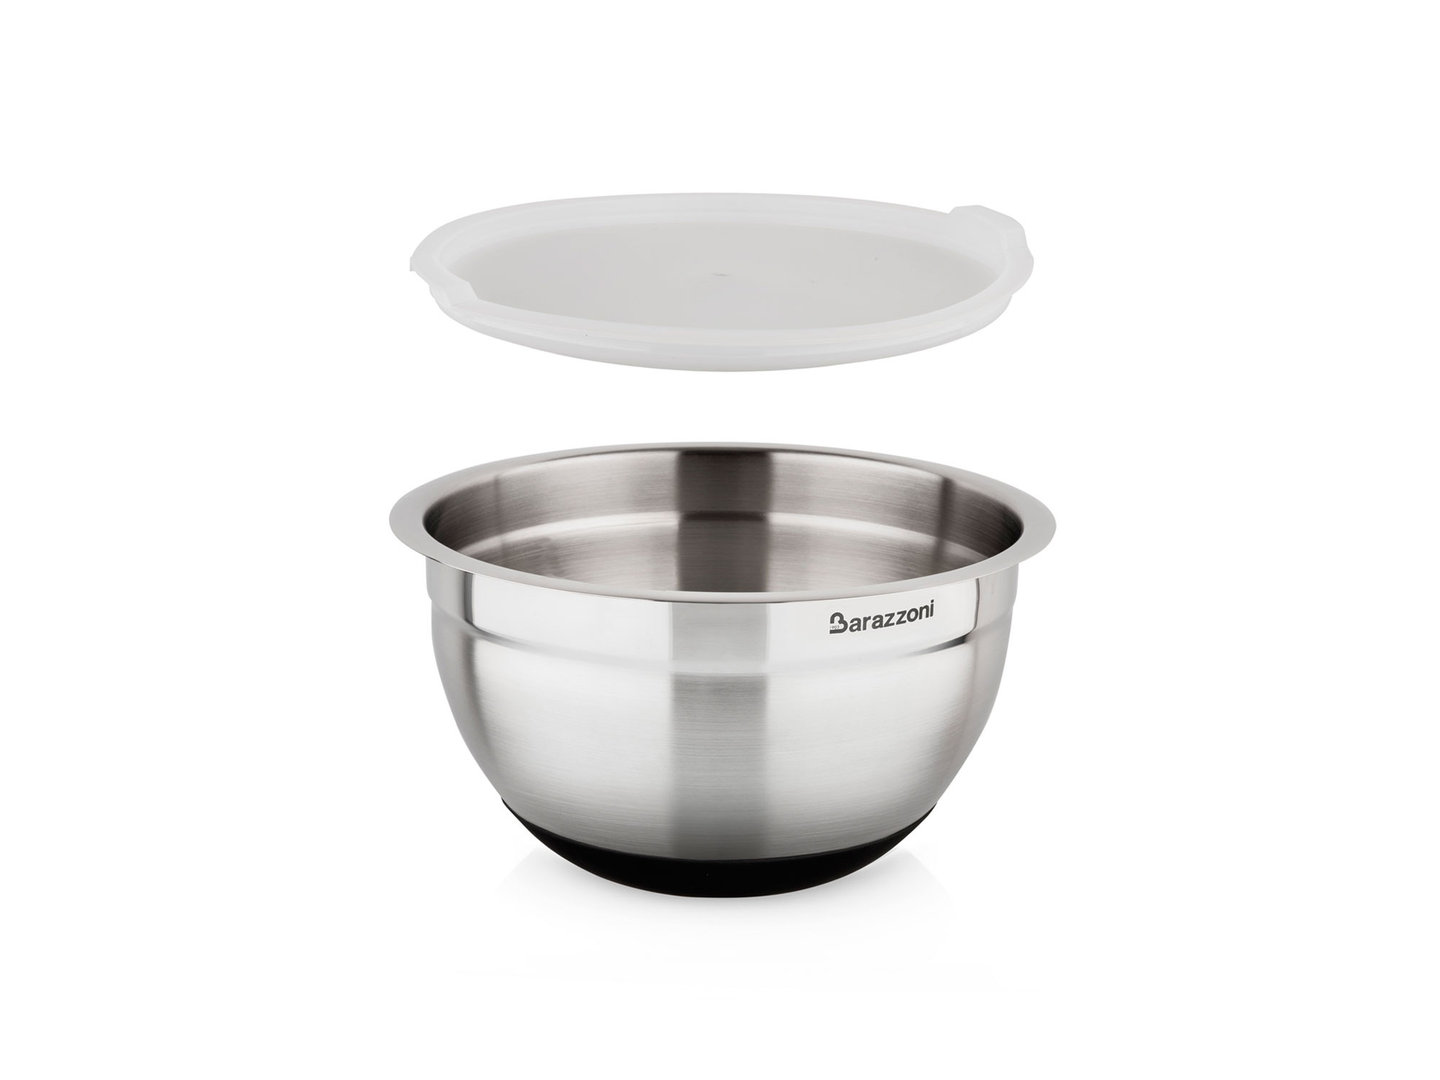 BARAZZONI slip-resistant mixing bowl stainless steel with lid 16 cm 1.5 liters